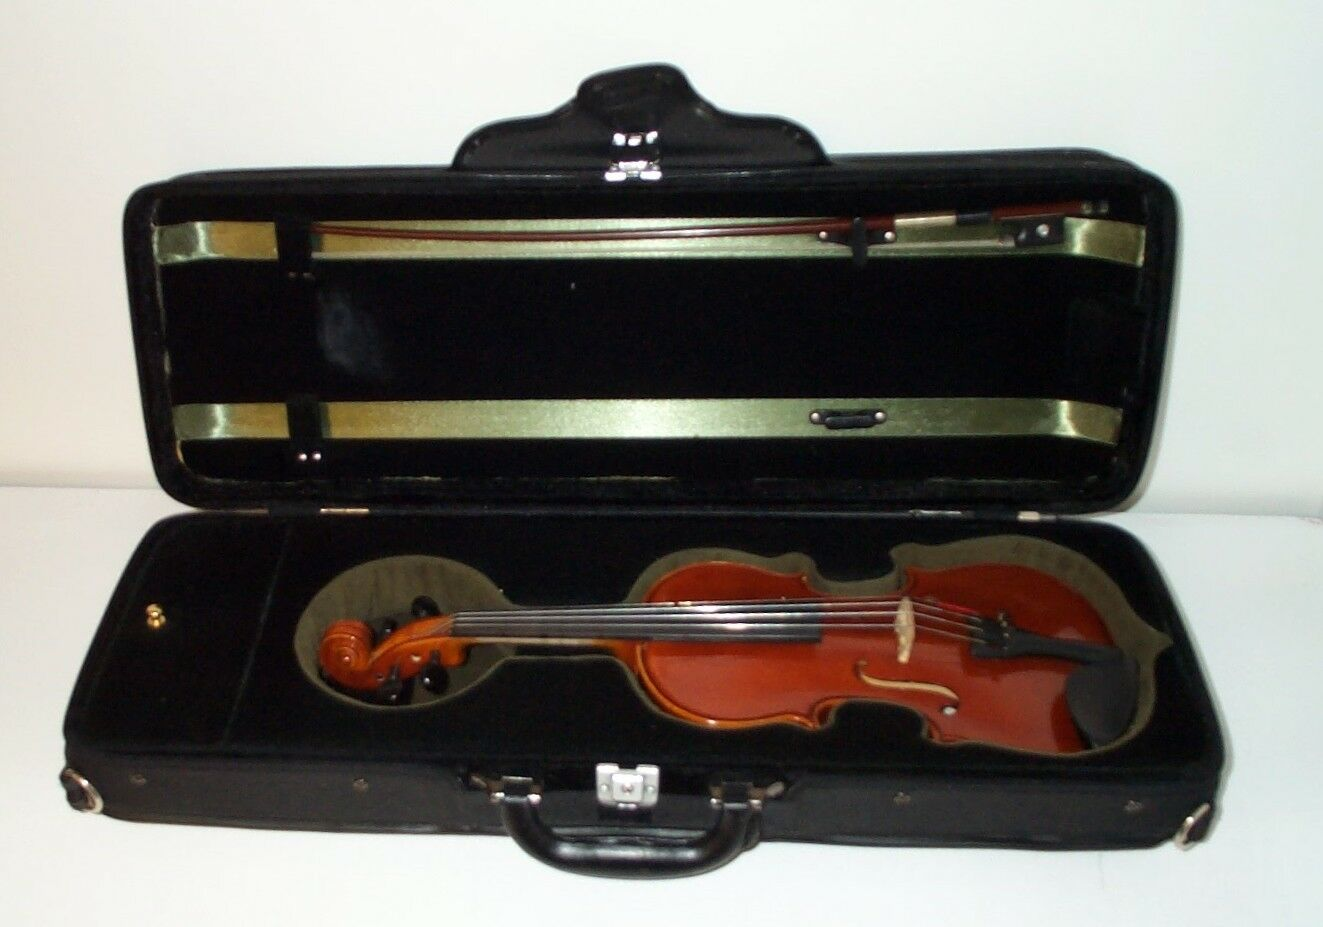 H. SIEGLER 1 4 VIOLIN DELUXE MODEL HS 40 W  CASE AND BOW